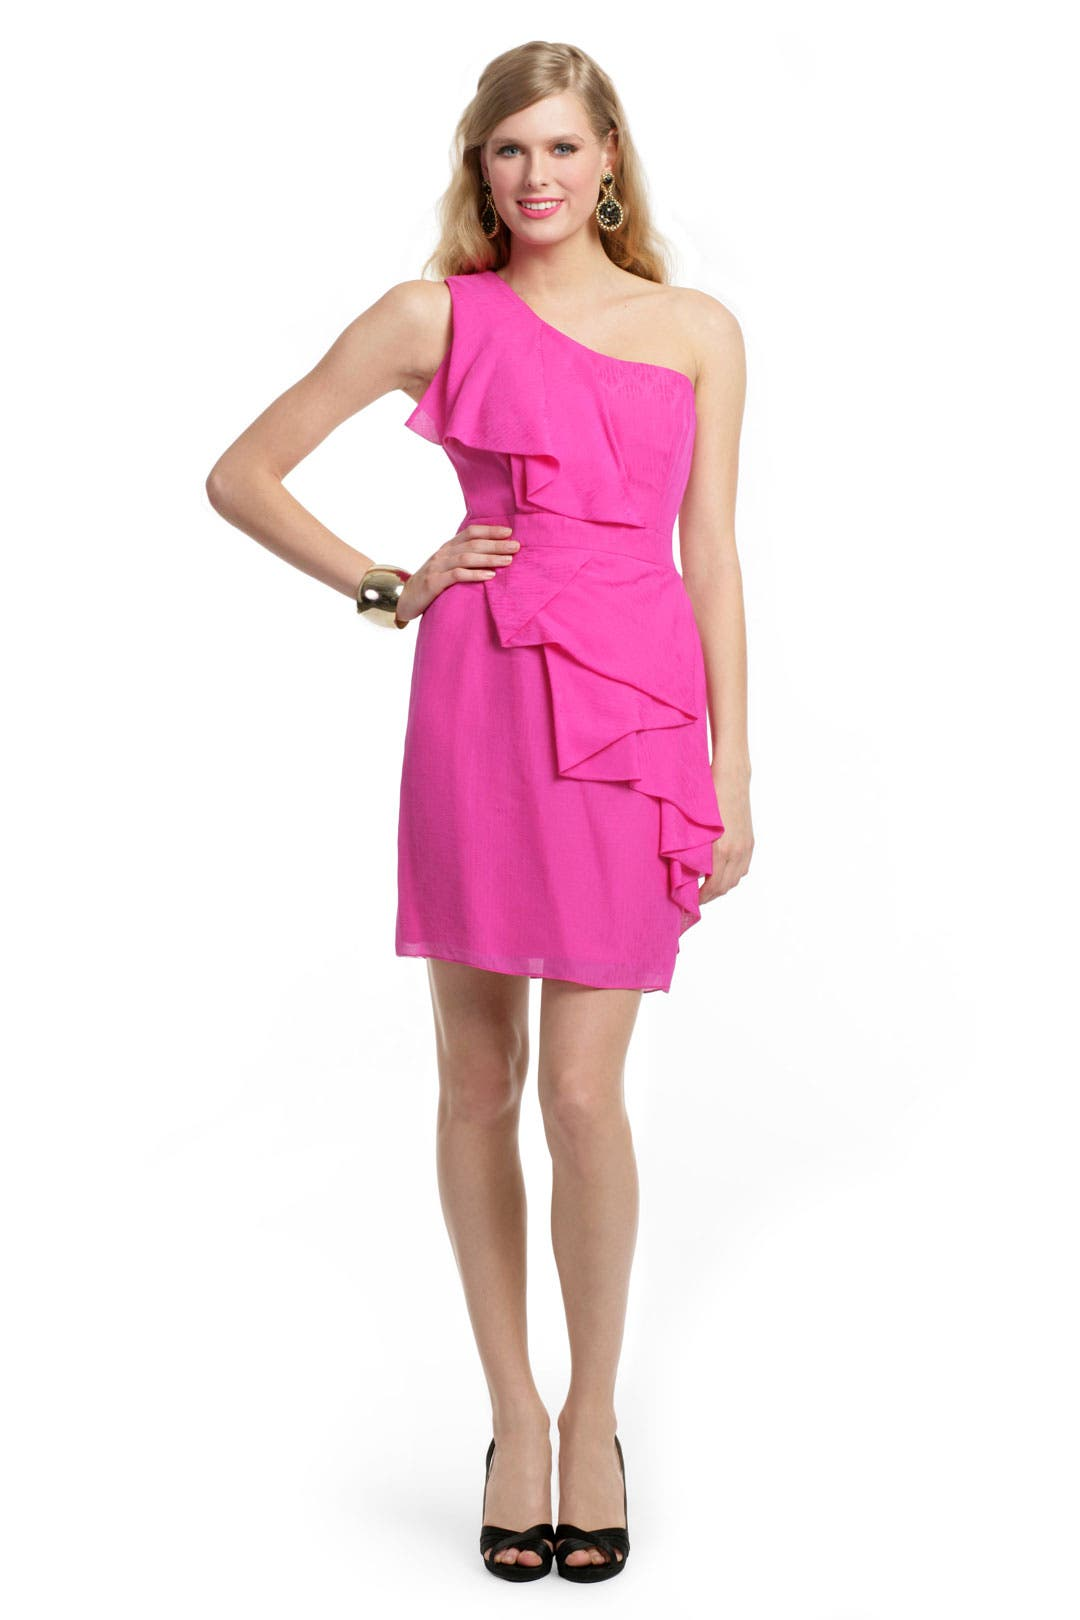 You Flirt in Fuchsia Dress by Shoshanna